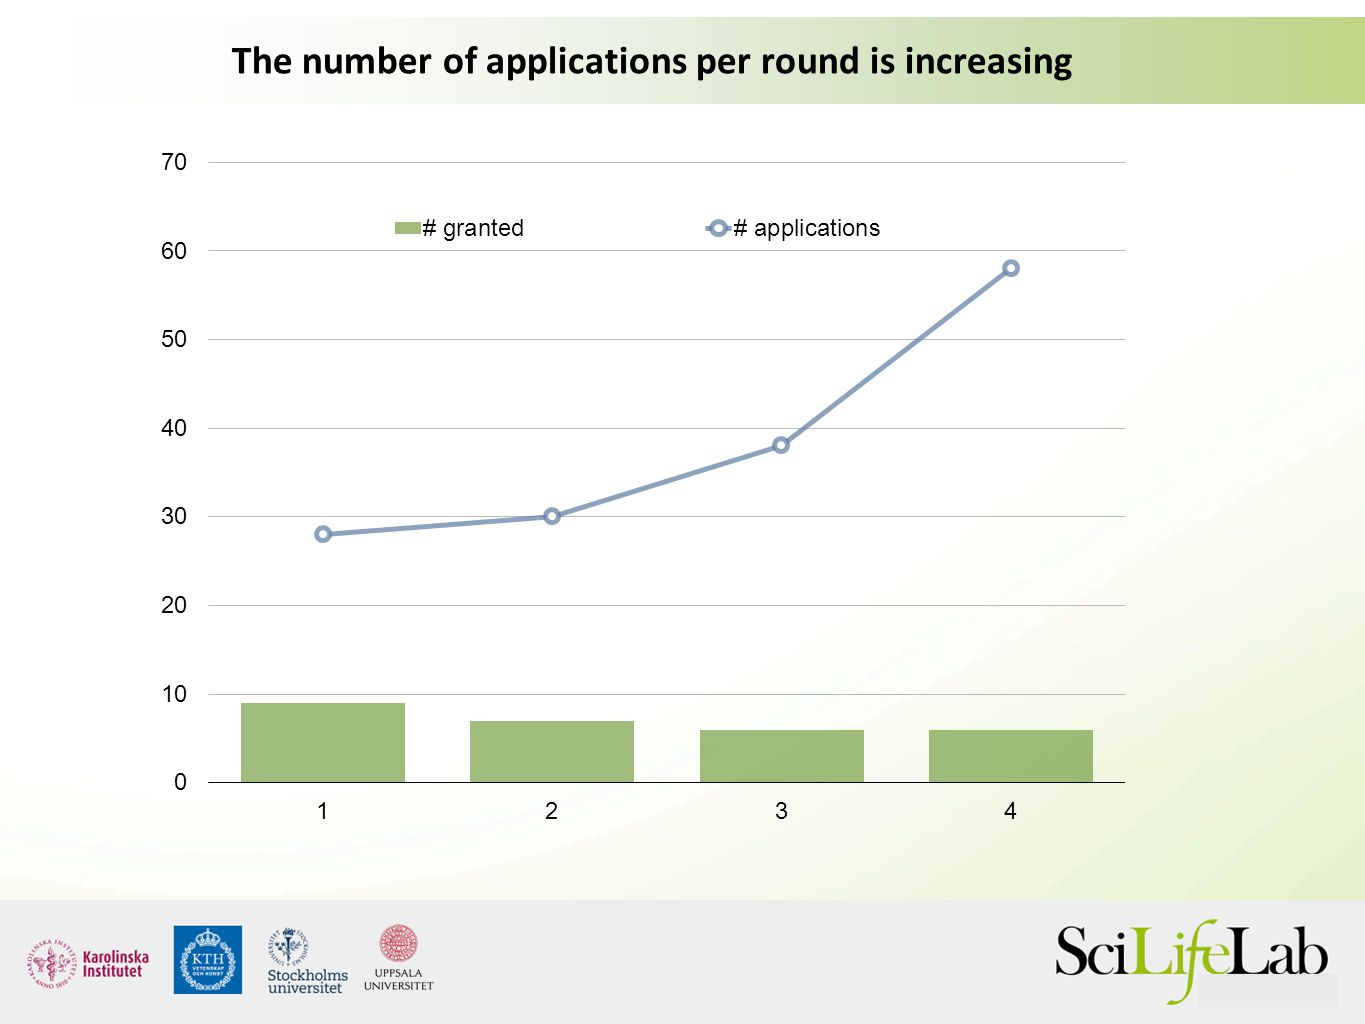 The number of applications per round is increasing